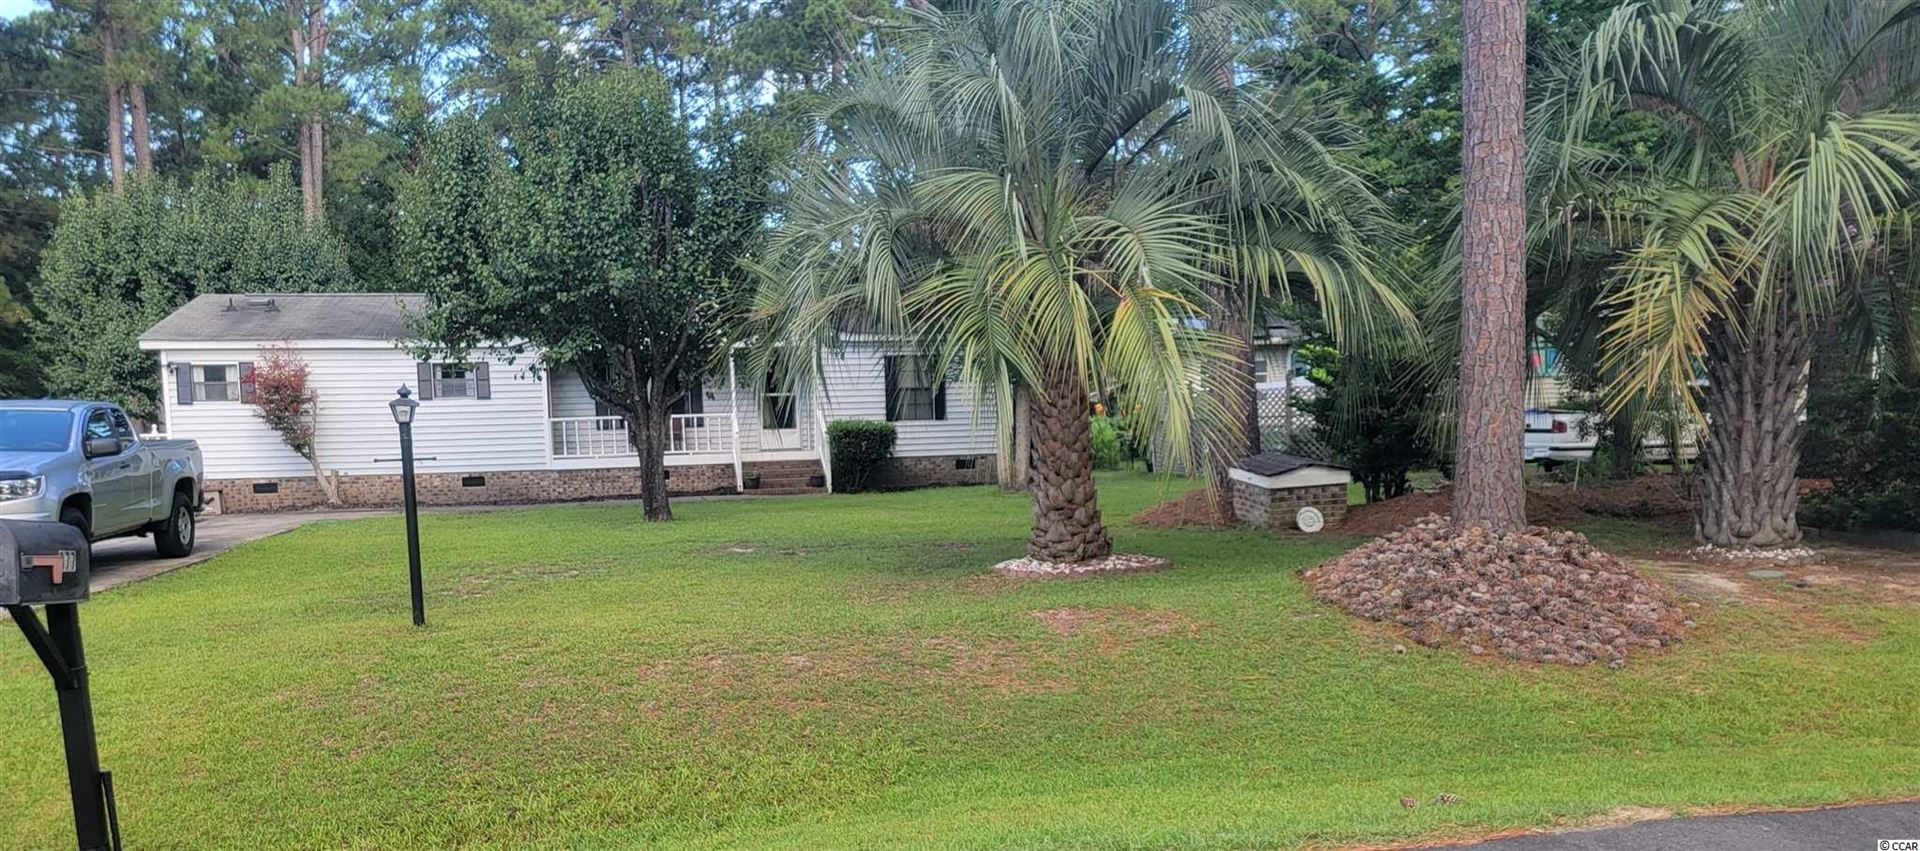 377 Ridgewood Dr. NW, Calabash, NC, 28467, Ocean Forest|Brunswick County Home For Sale